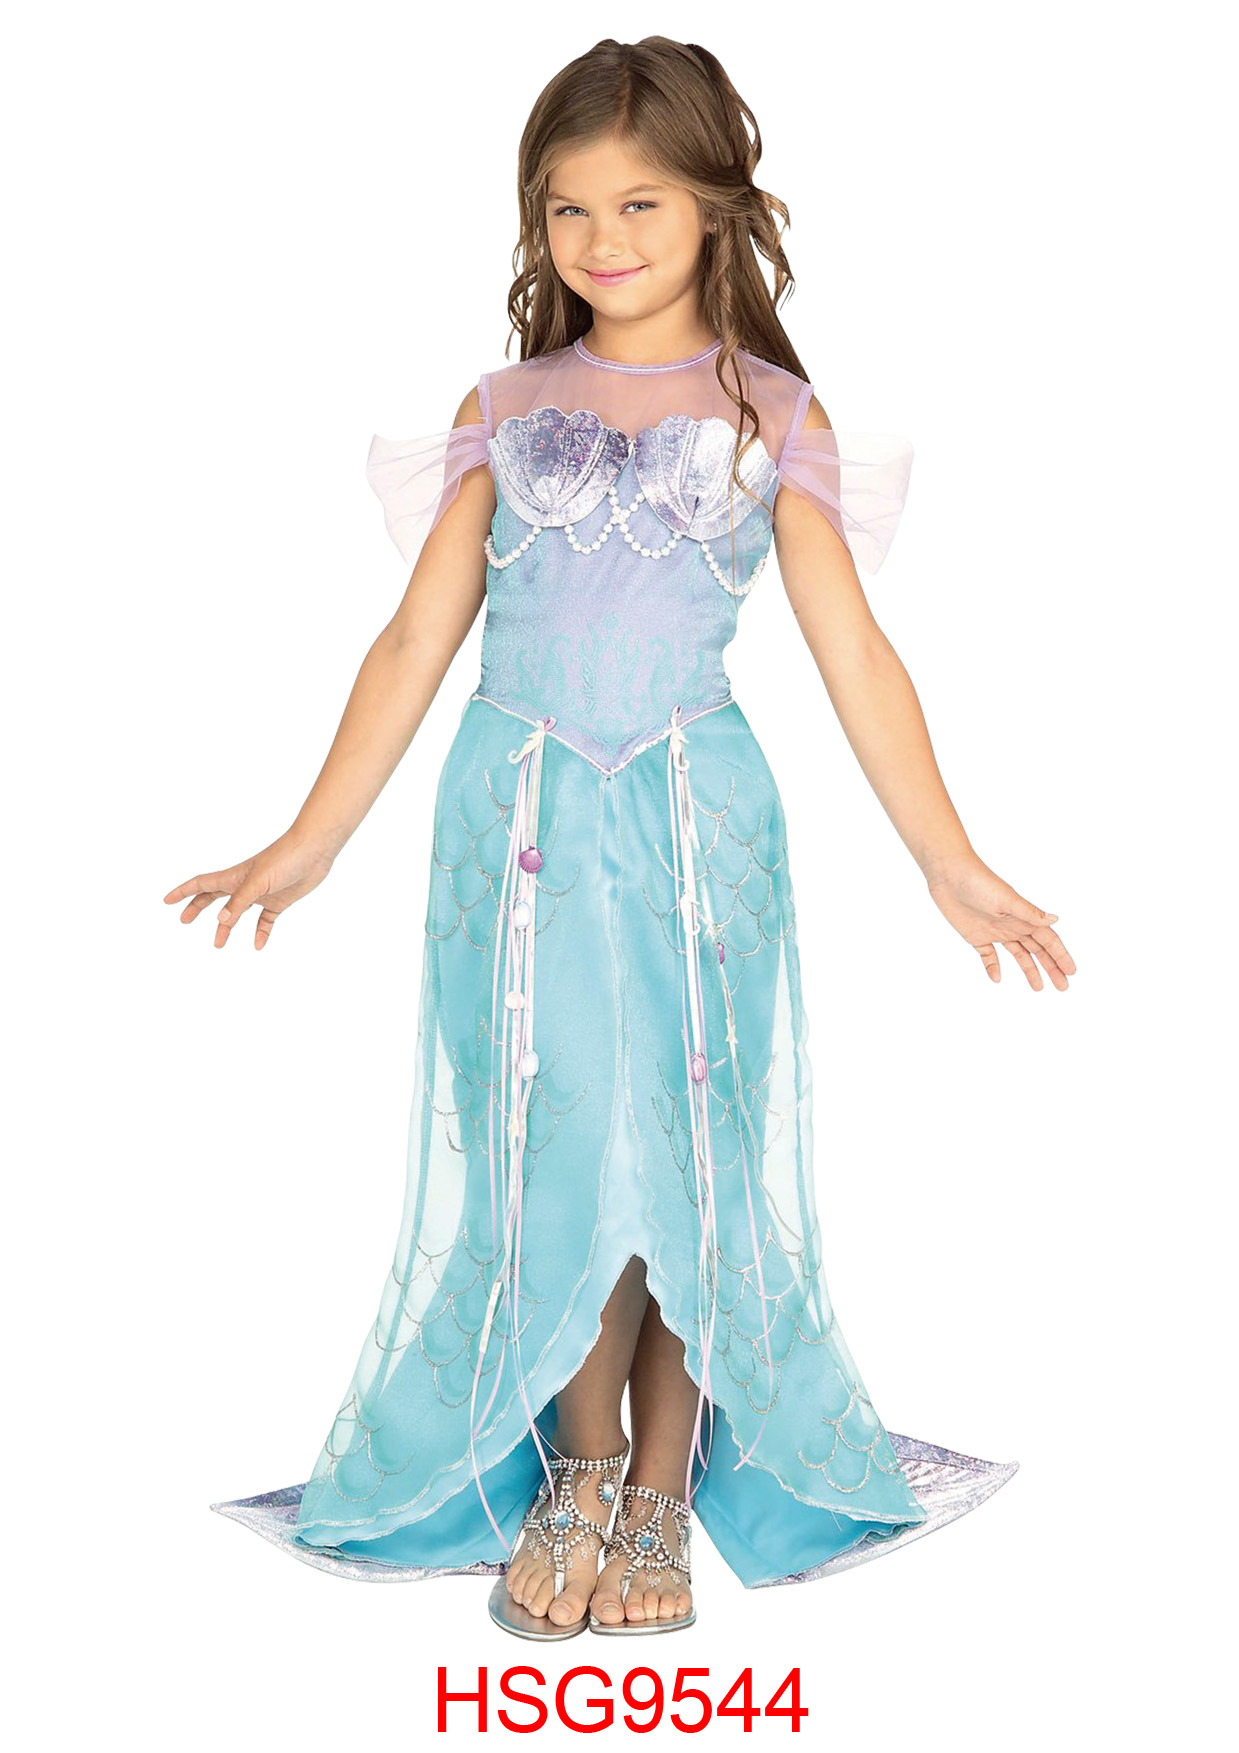 Halloween Kinderen Cosplay Mermaid Prinses Blauw Paars Jurk Party-HSG9544